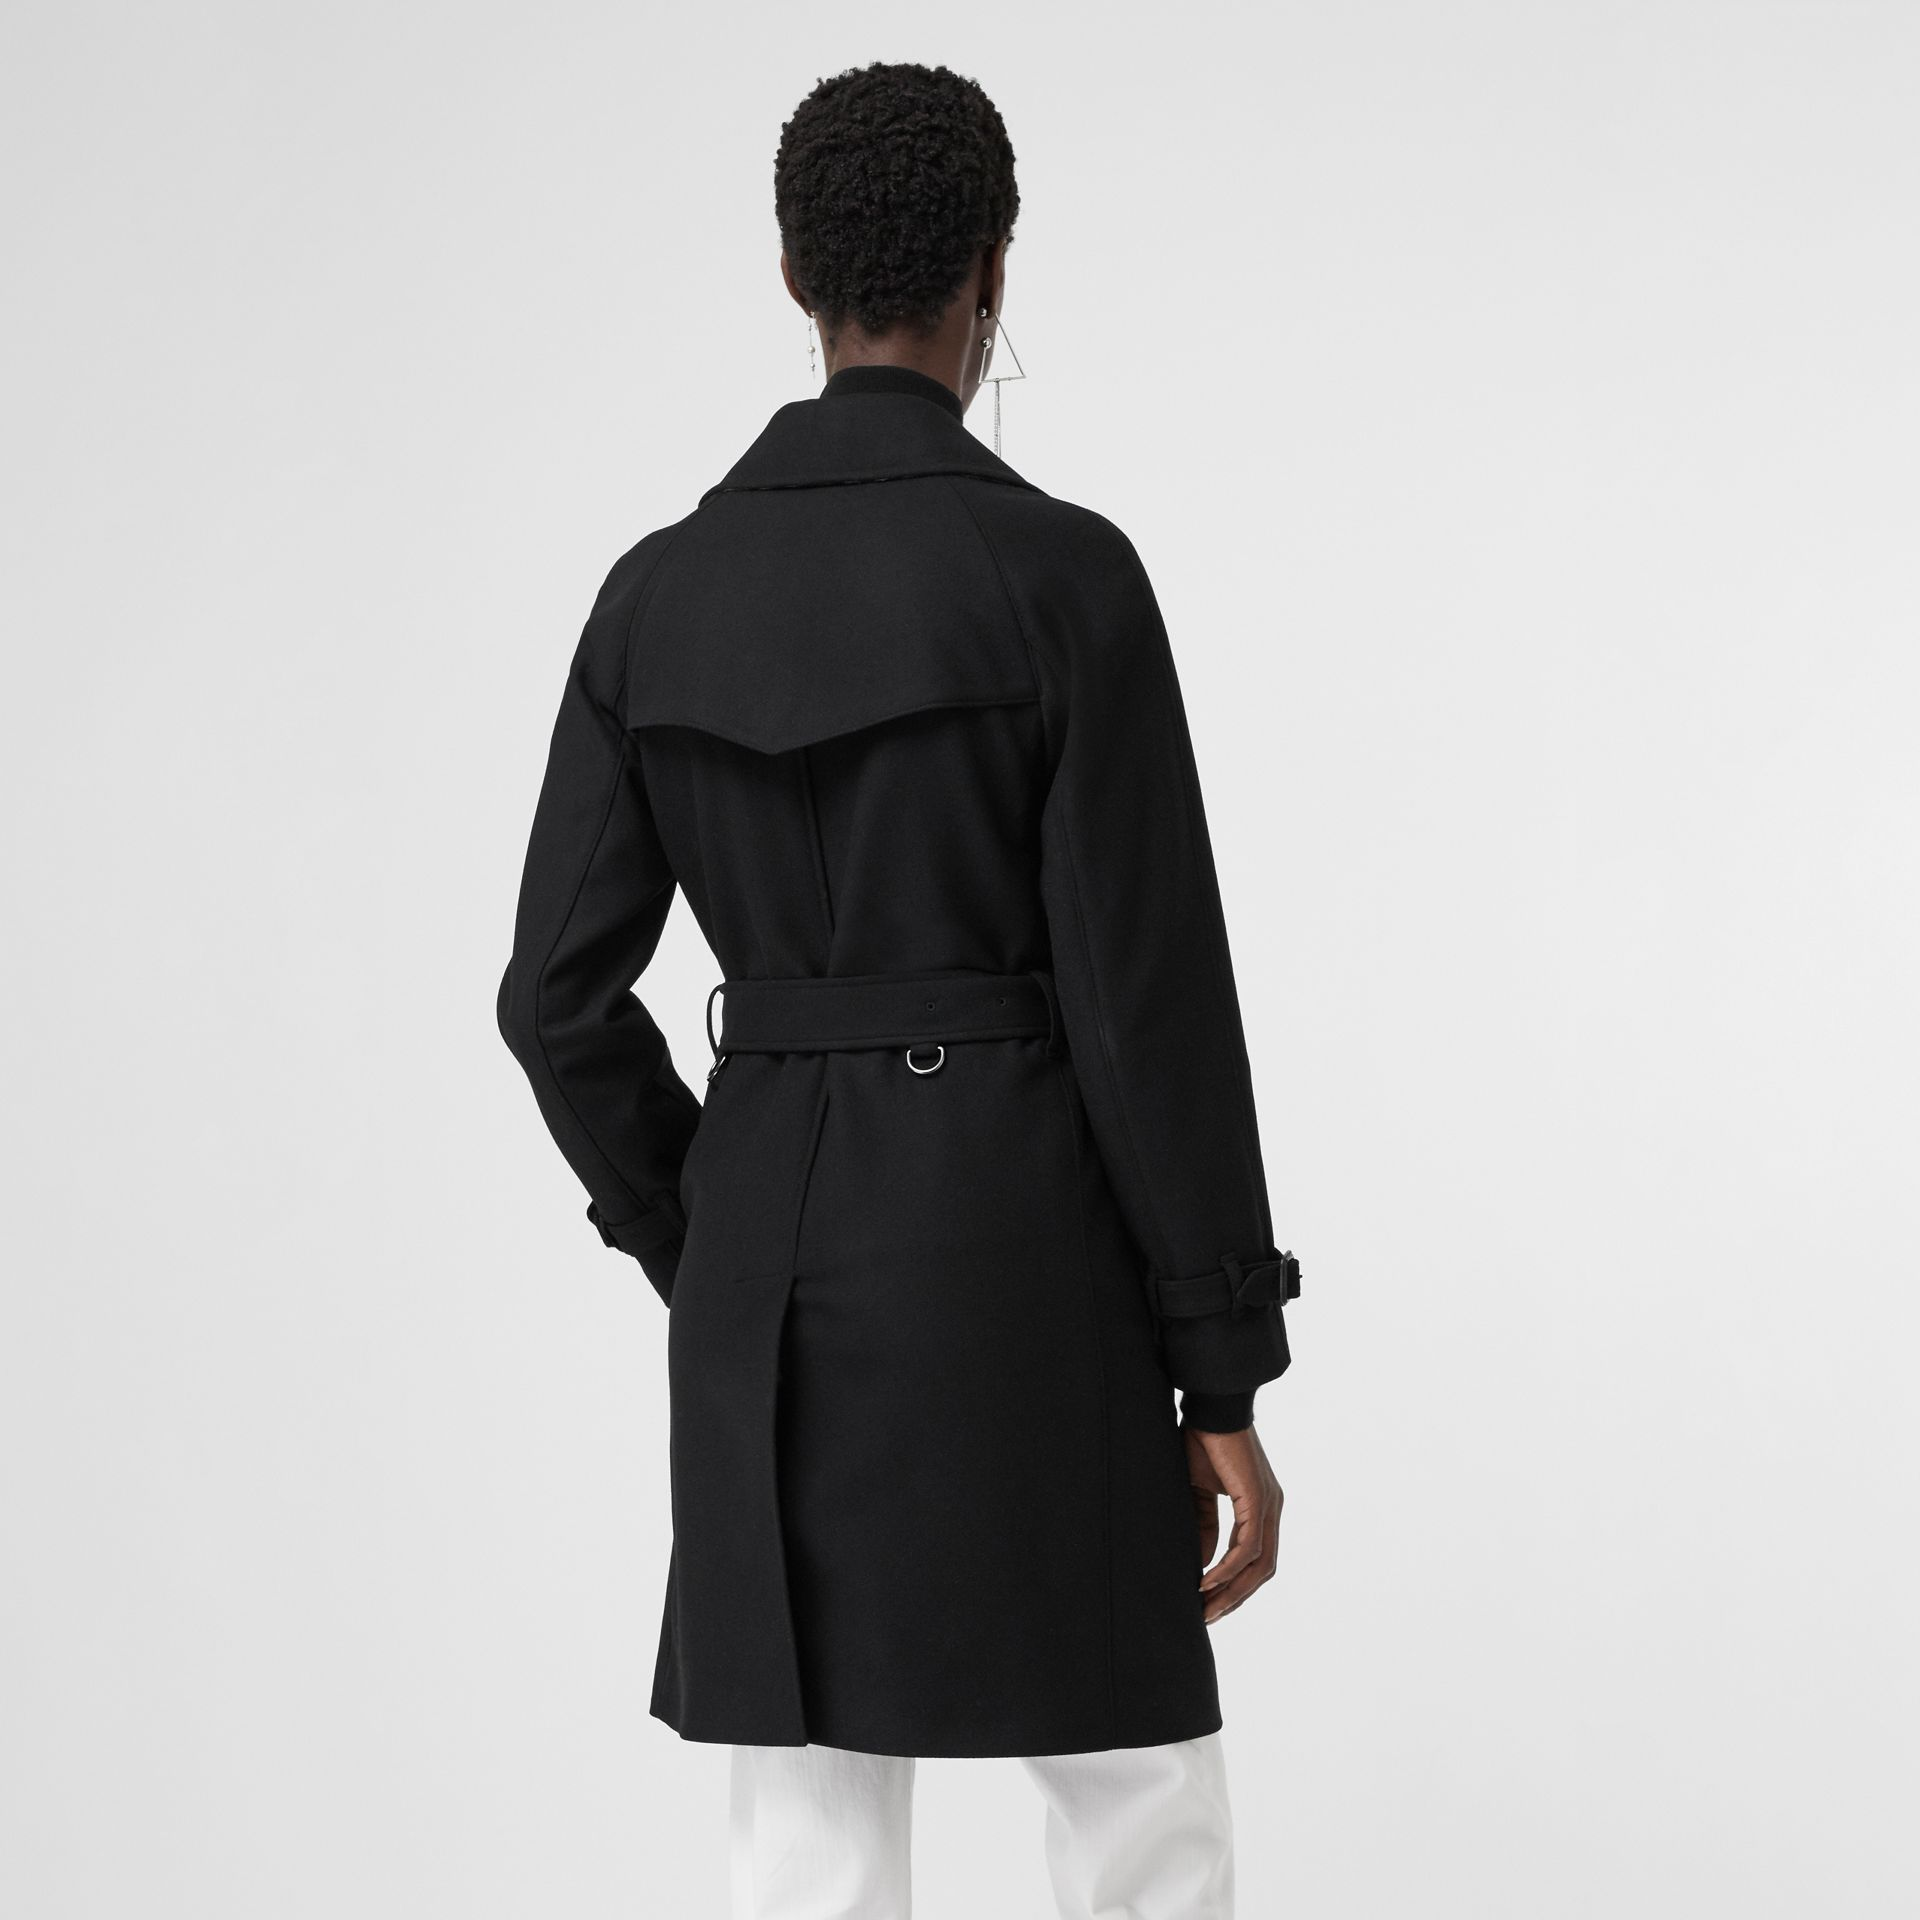 Herringbone Wool Cashmere Blend Trench Coat in Black - Women | Burberry United Kingdom - gallery image 2